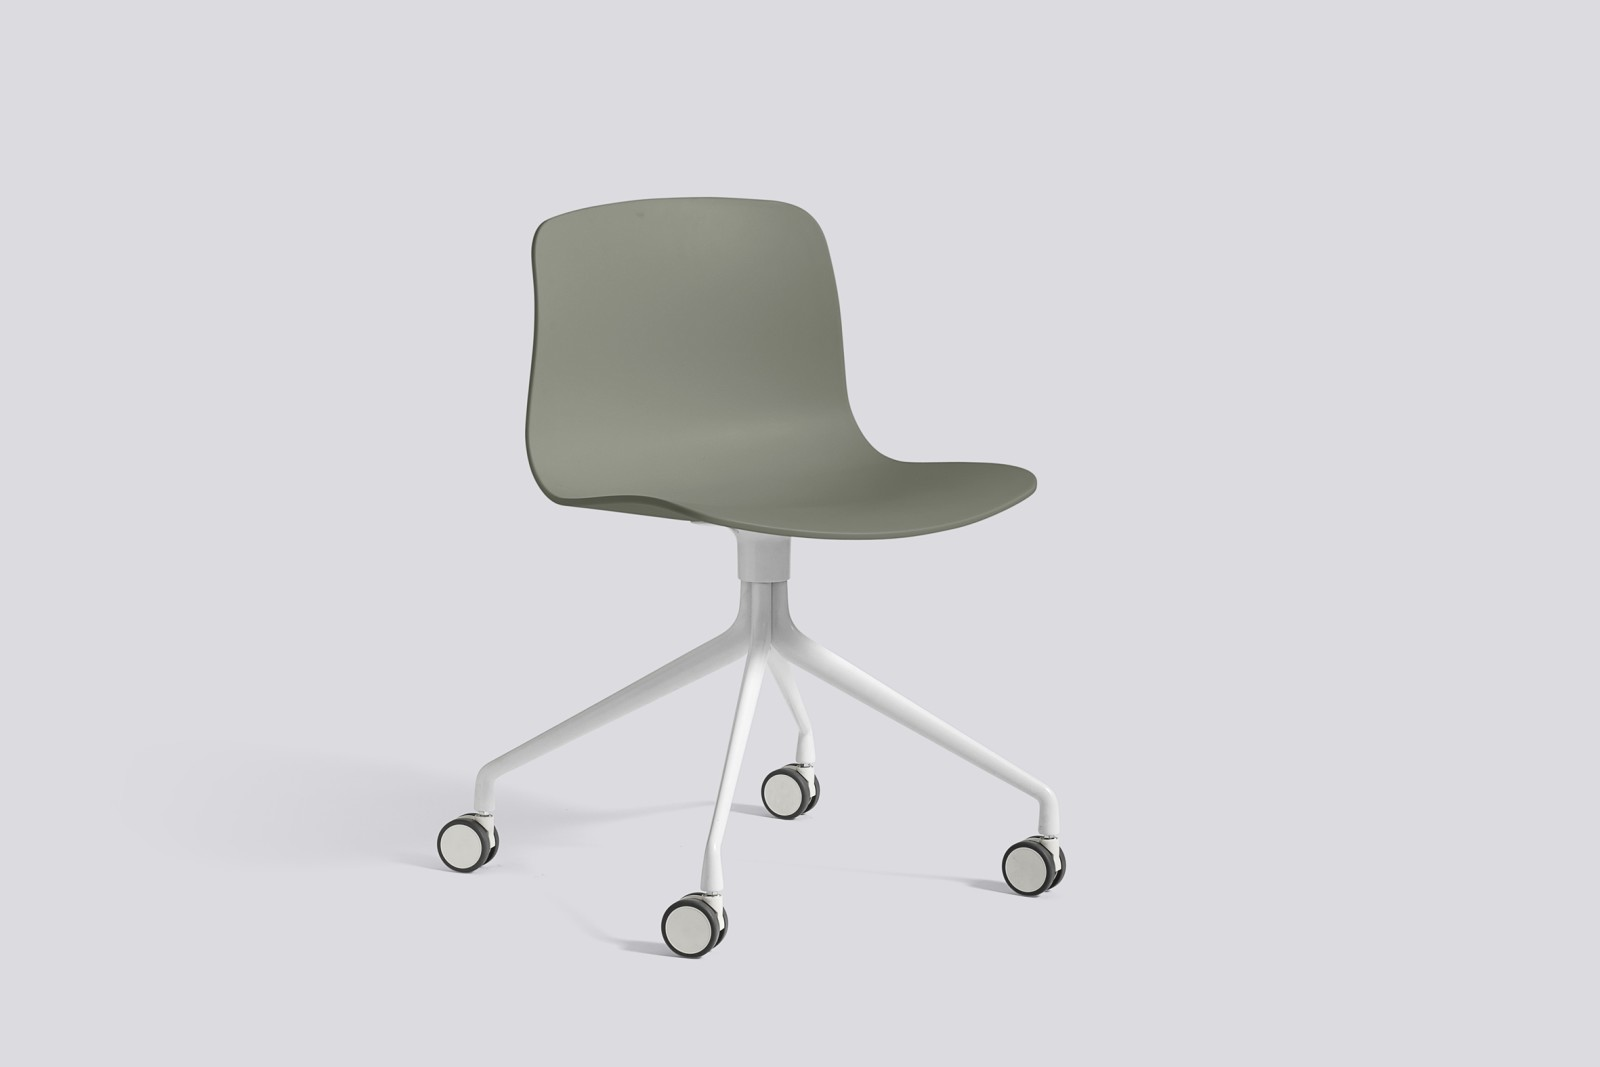 About A Chair AAC14 Dusty green, White Powder Coated Aluminium